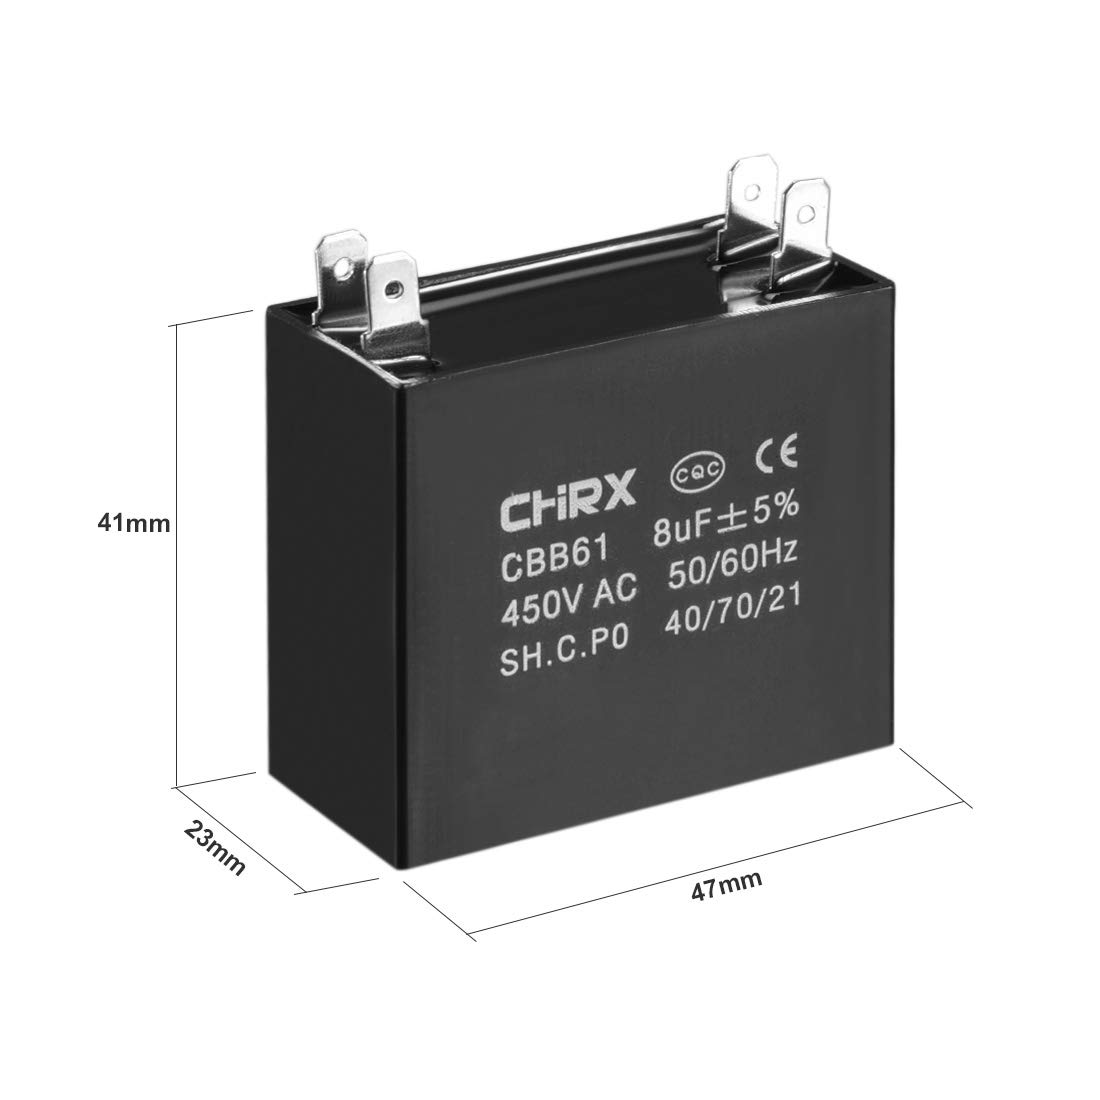 uxcell CBB61 Run Capacitor 450V AC 3uF 2 Insert Metallized Polypropylene Film Capacitors for Ceiling Fan